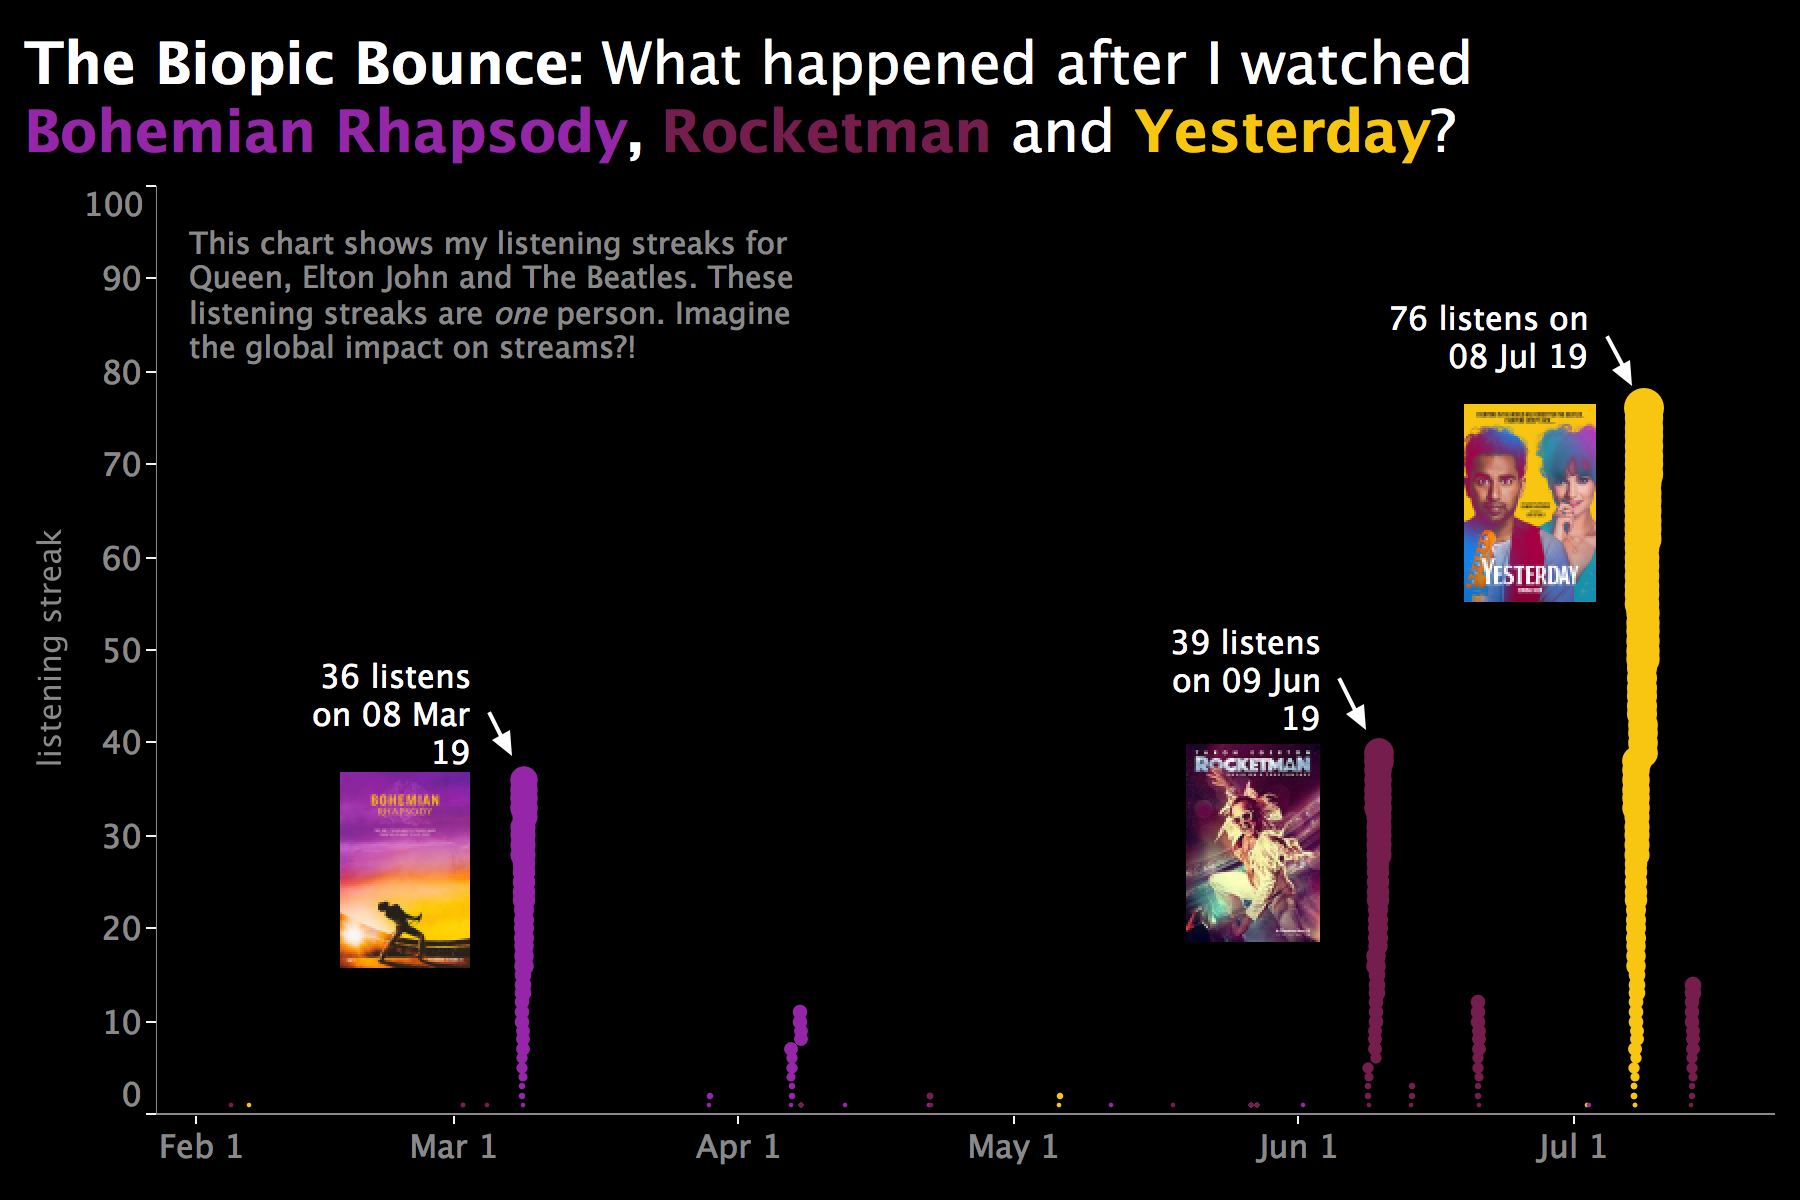 How Bohemian Rhapsody, Rocketman, and Yesterday impacted andy cotgreave's last.fm scobbling data